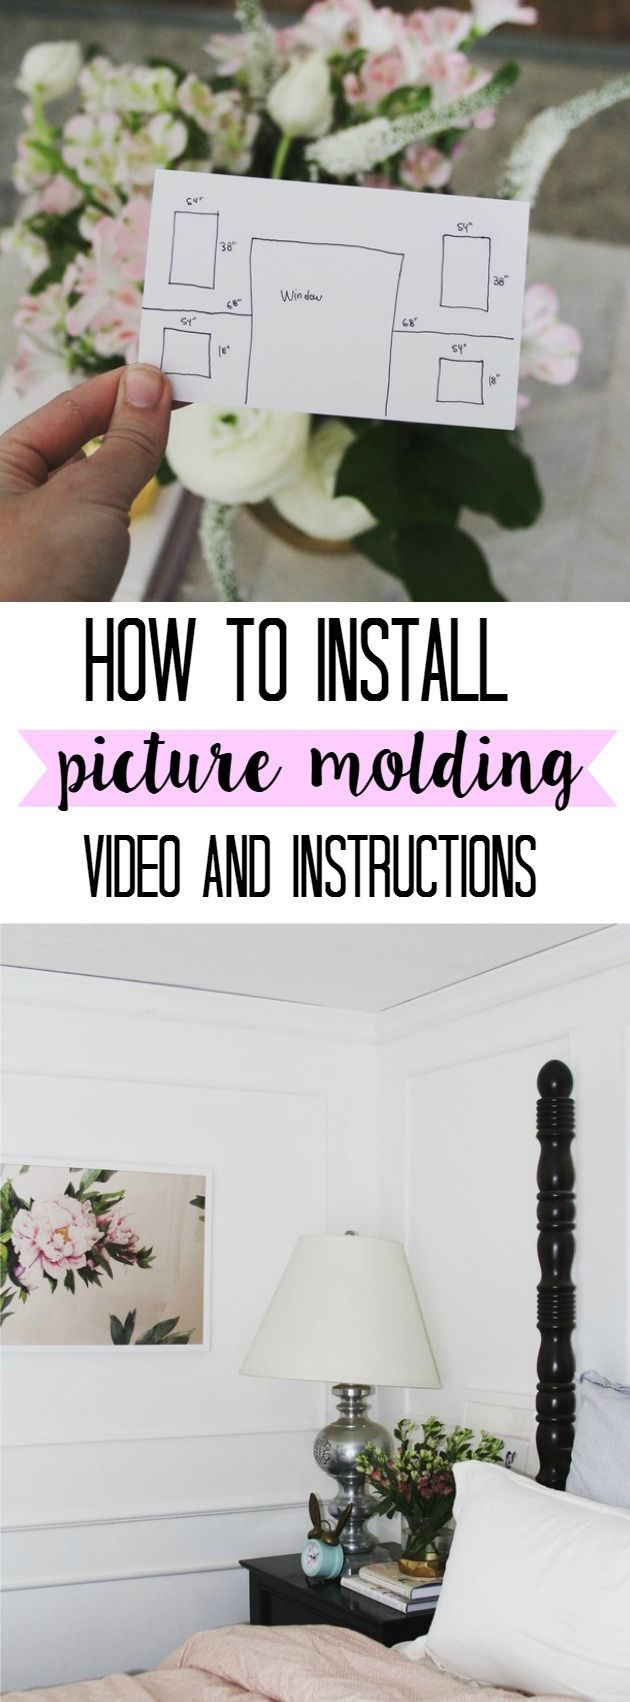 Bedroom Update- How to Put up Picture Molding